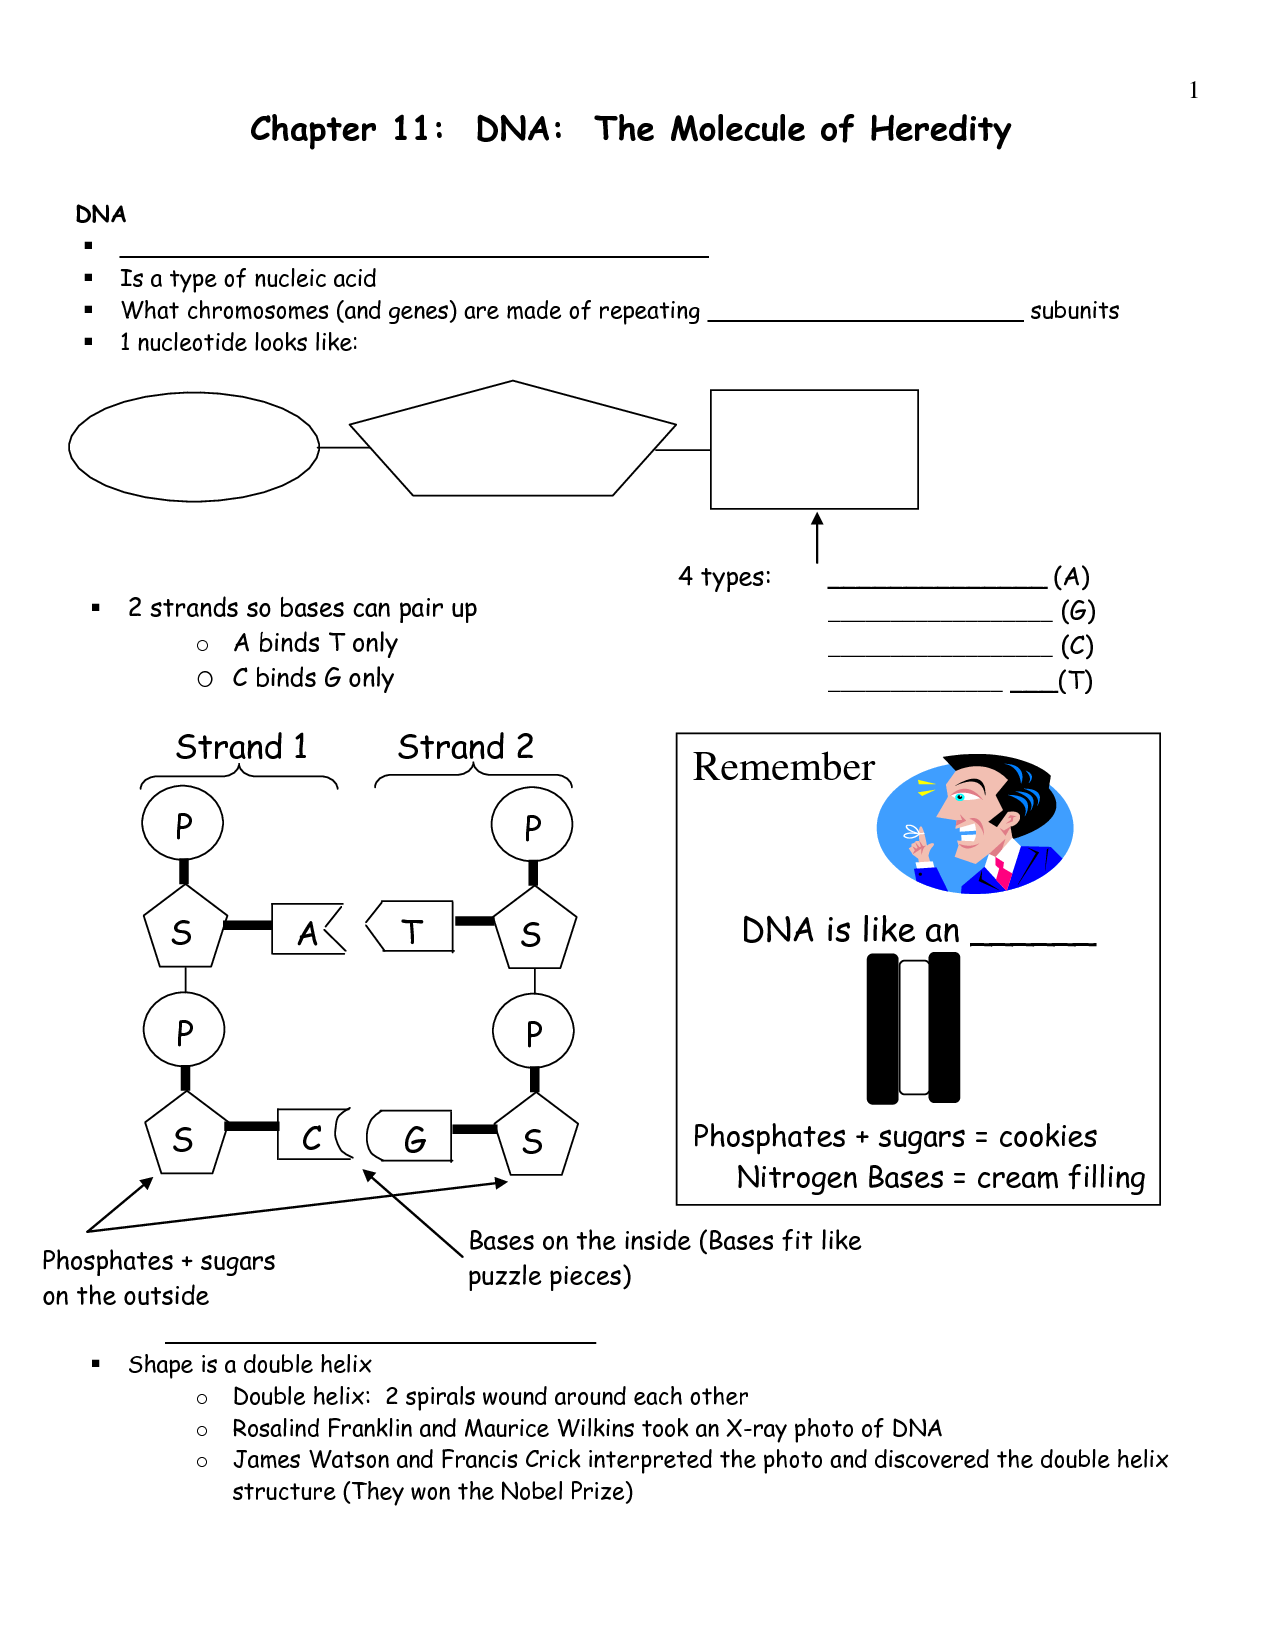 dna replication diagram worksheet rgb to vga converter circuit 12 best images of the molecule heredity